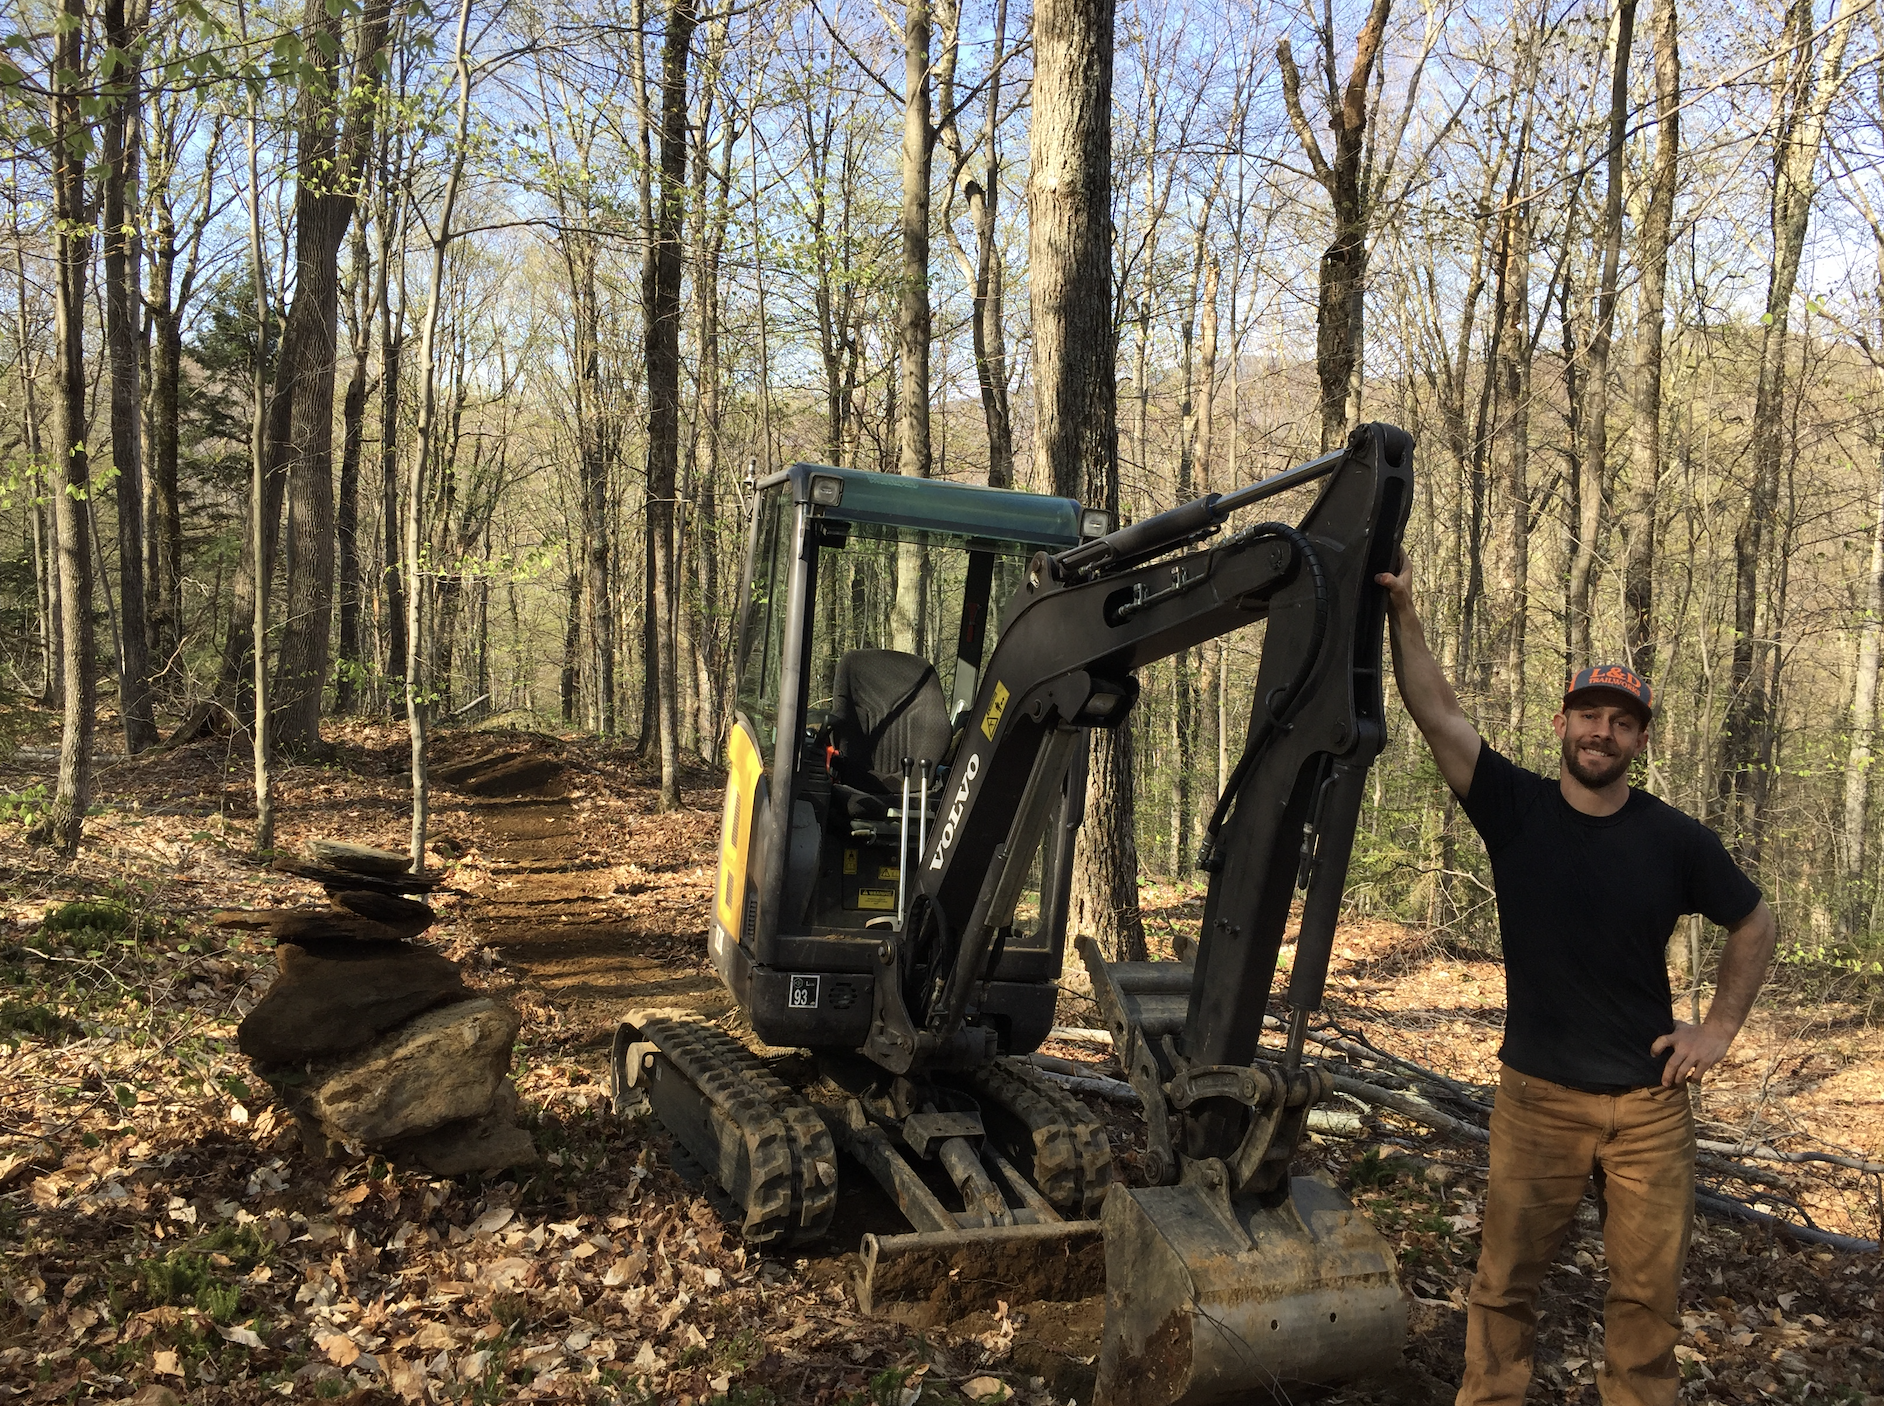 Trail Building is an Art Form for One of Vermont's Most Well-Known Diggers - Singletracks Mountain Bike News